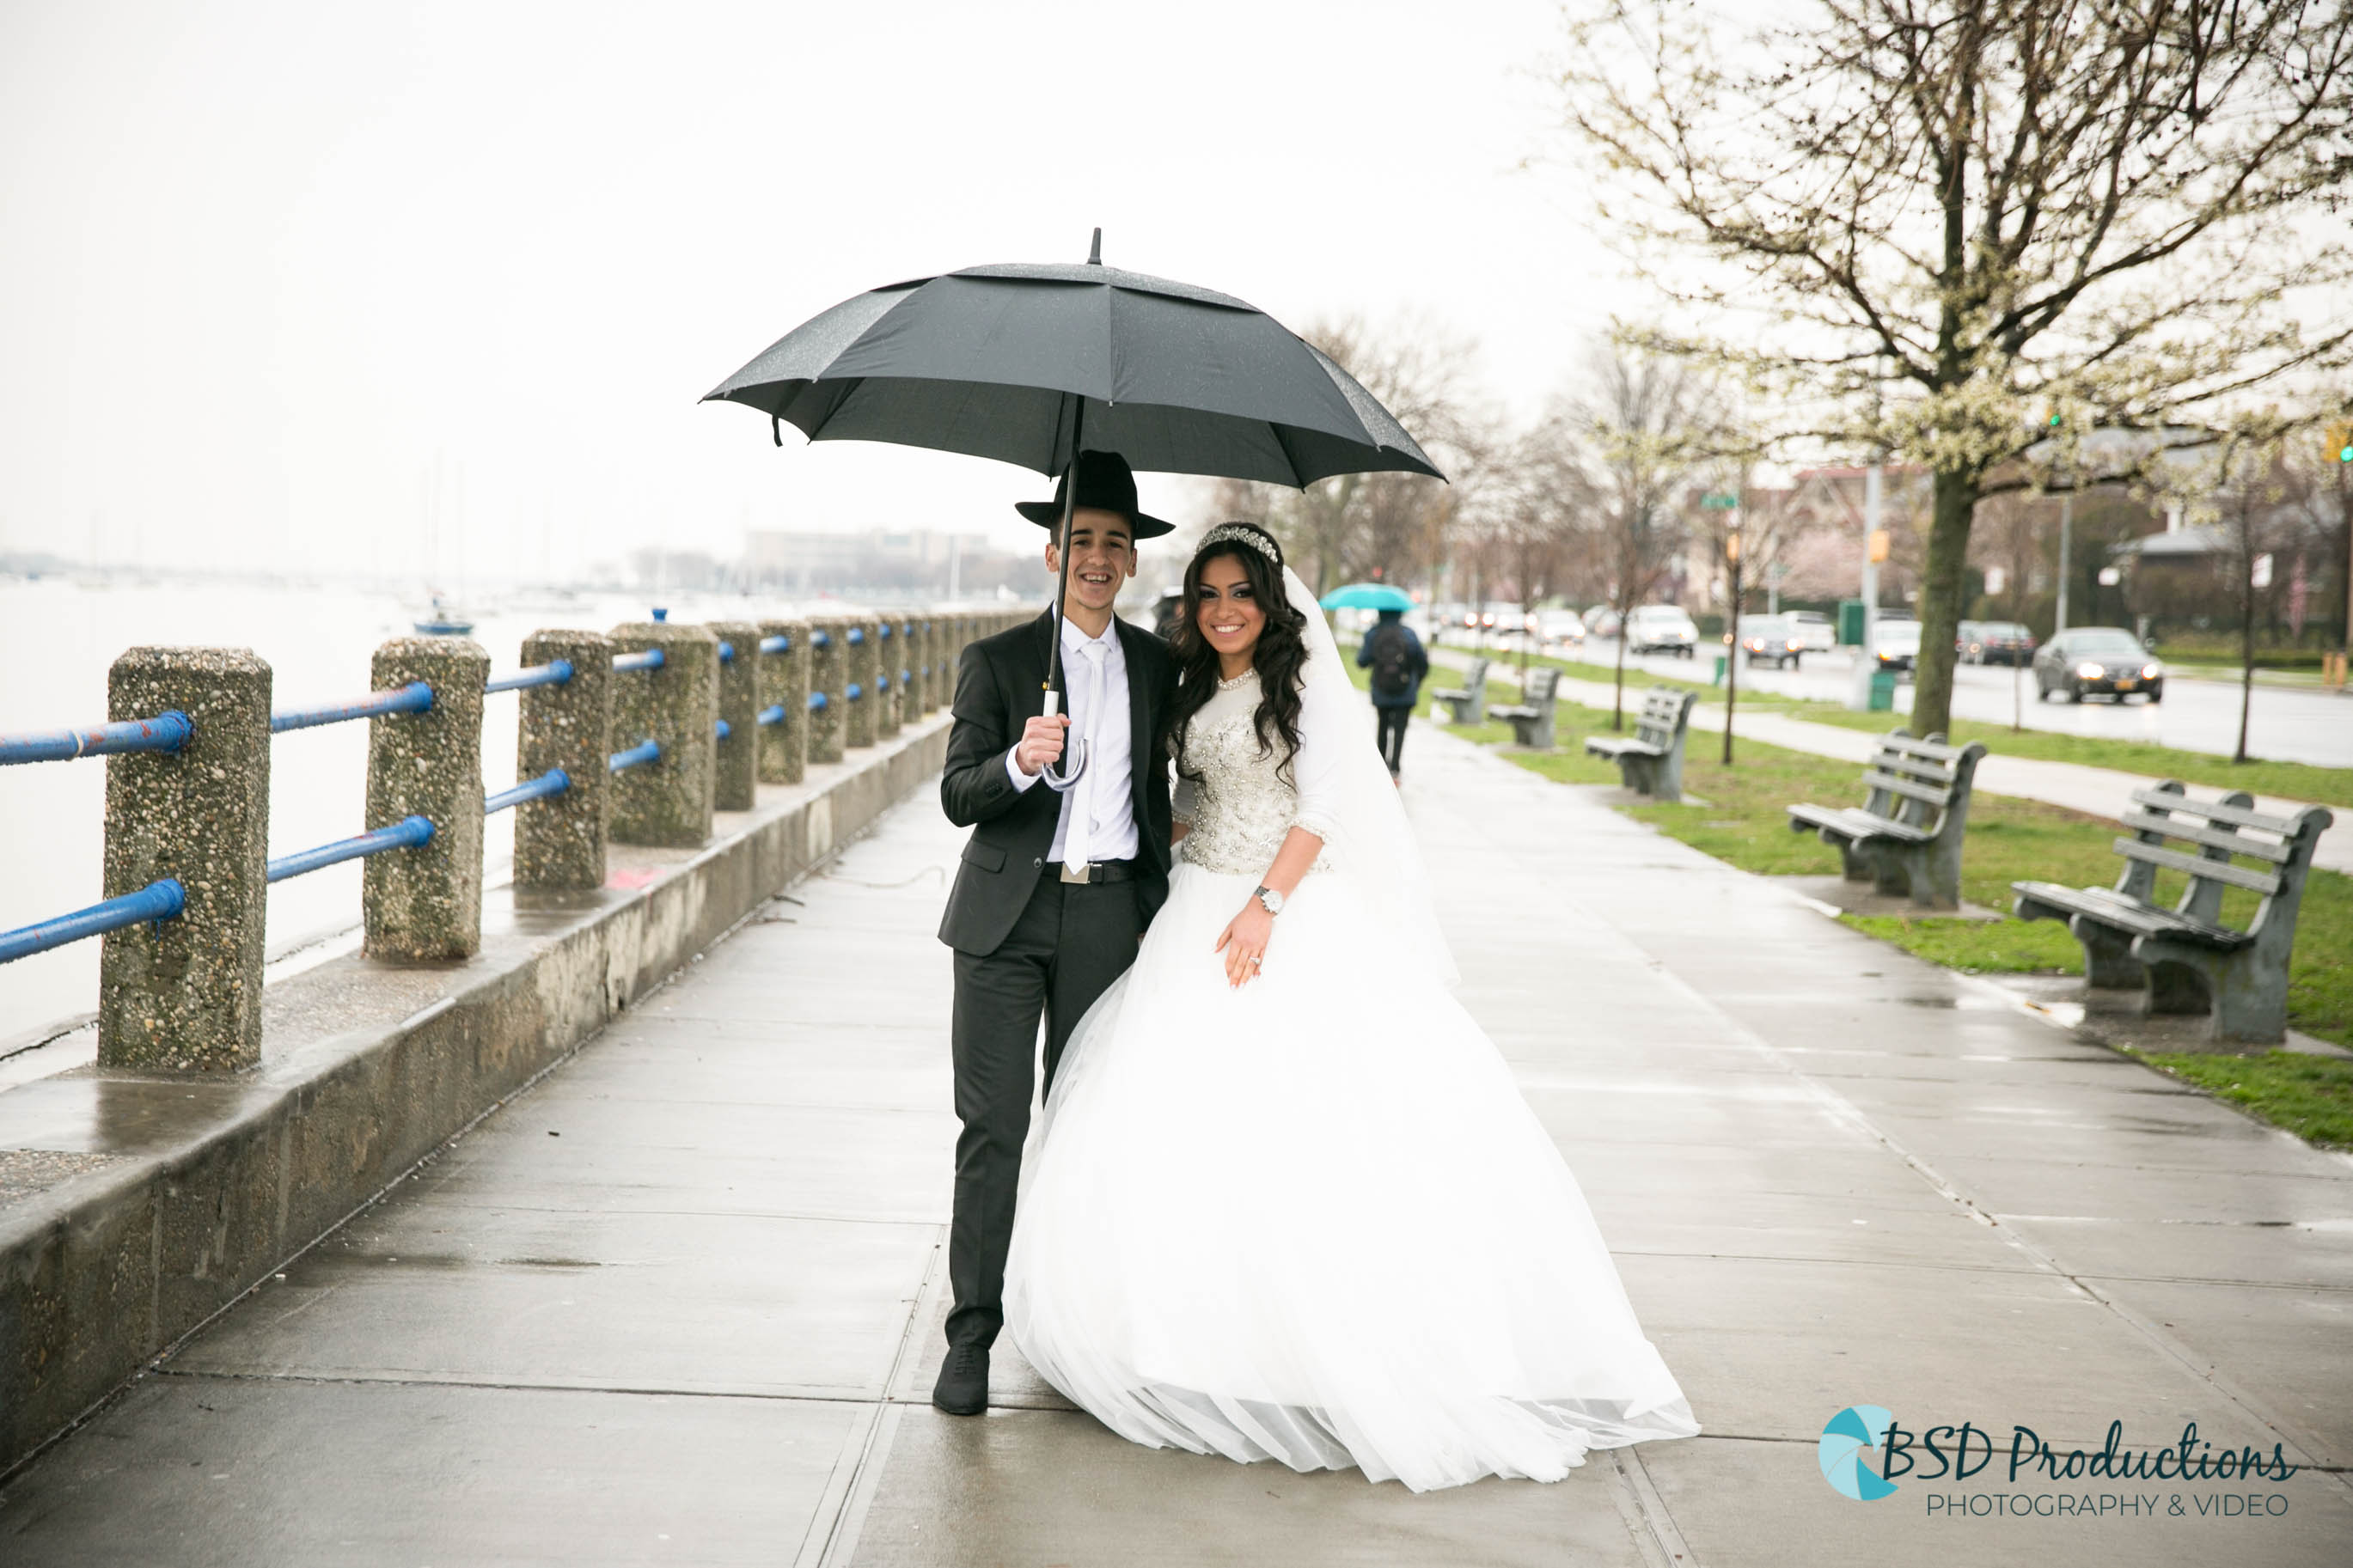 UH5A8687 Wedding – BSD Productions Photography